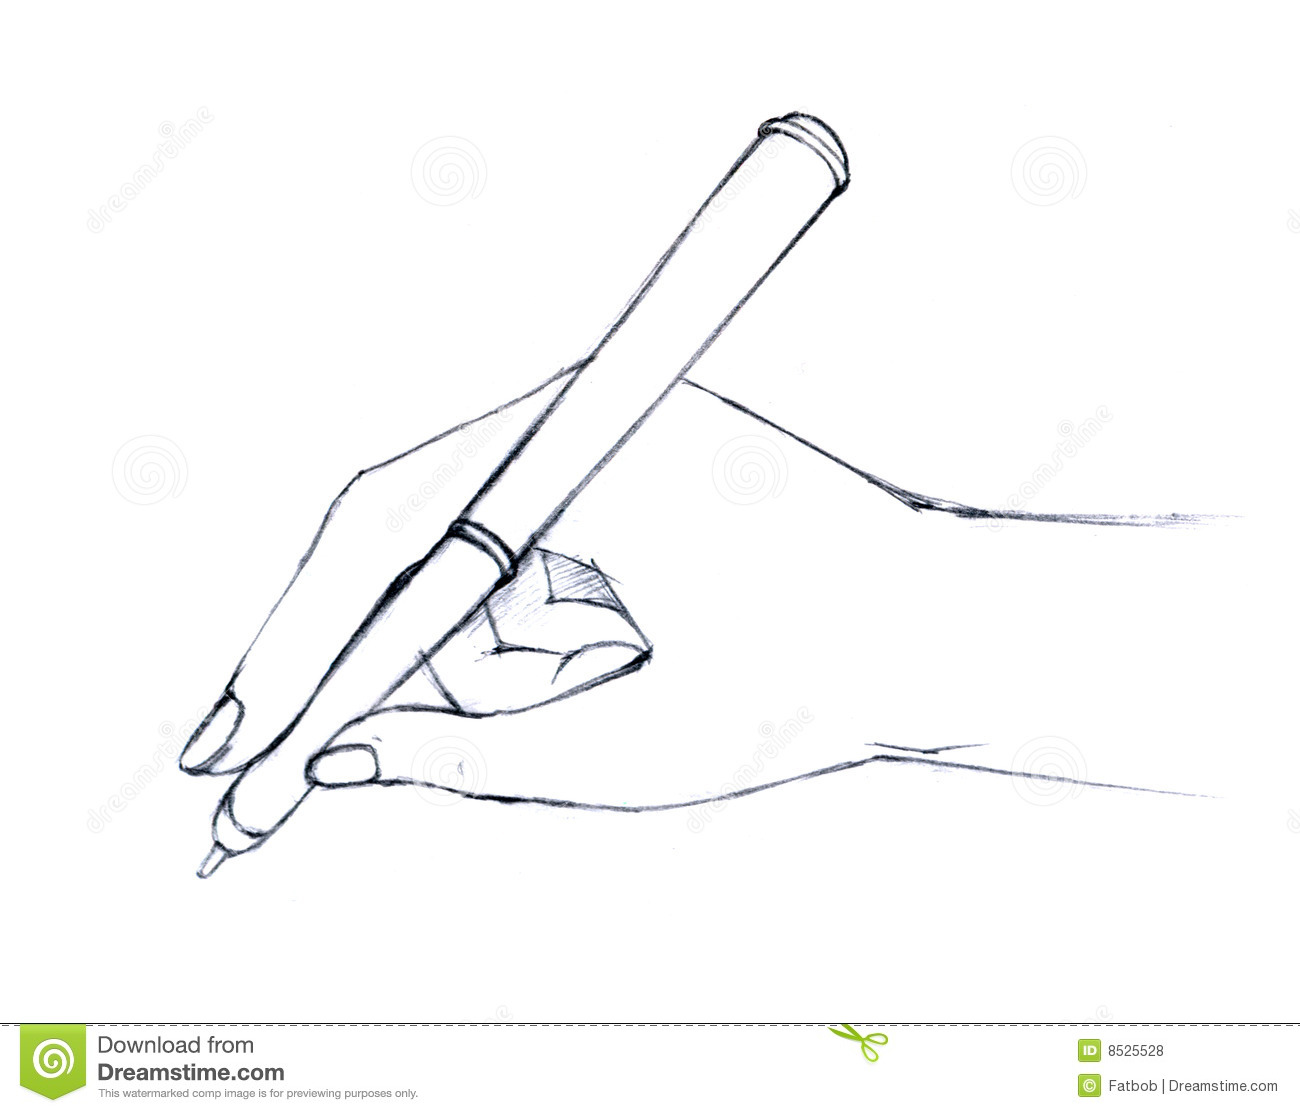 How To Draw Hands Holding A Pencil